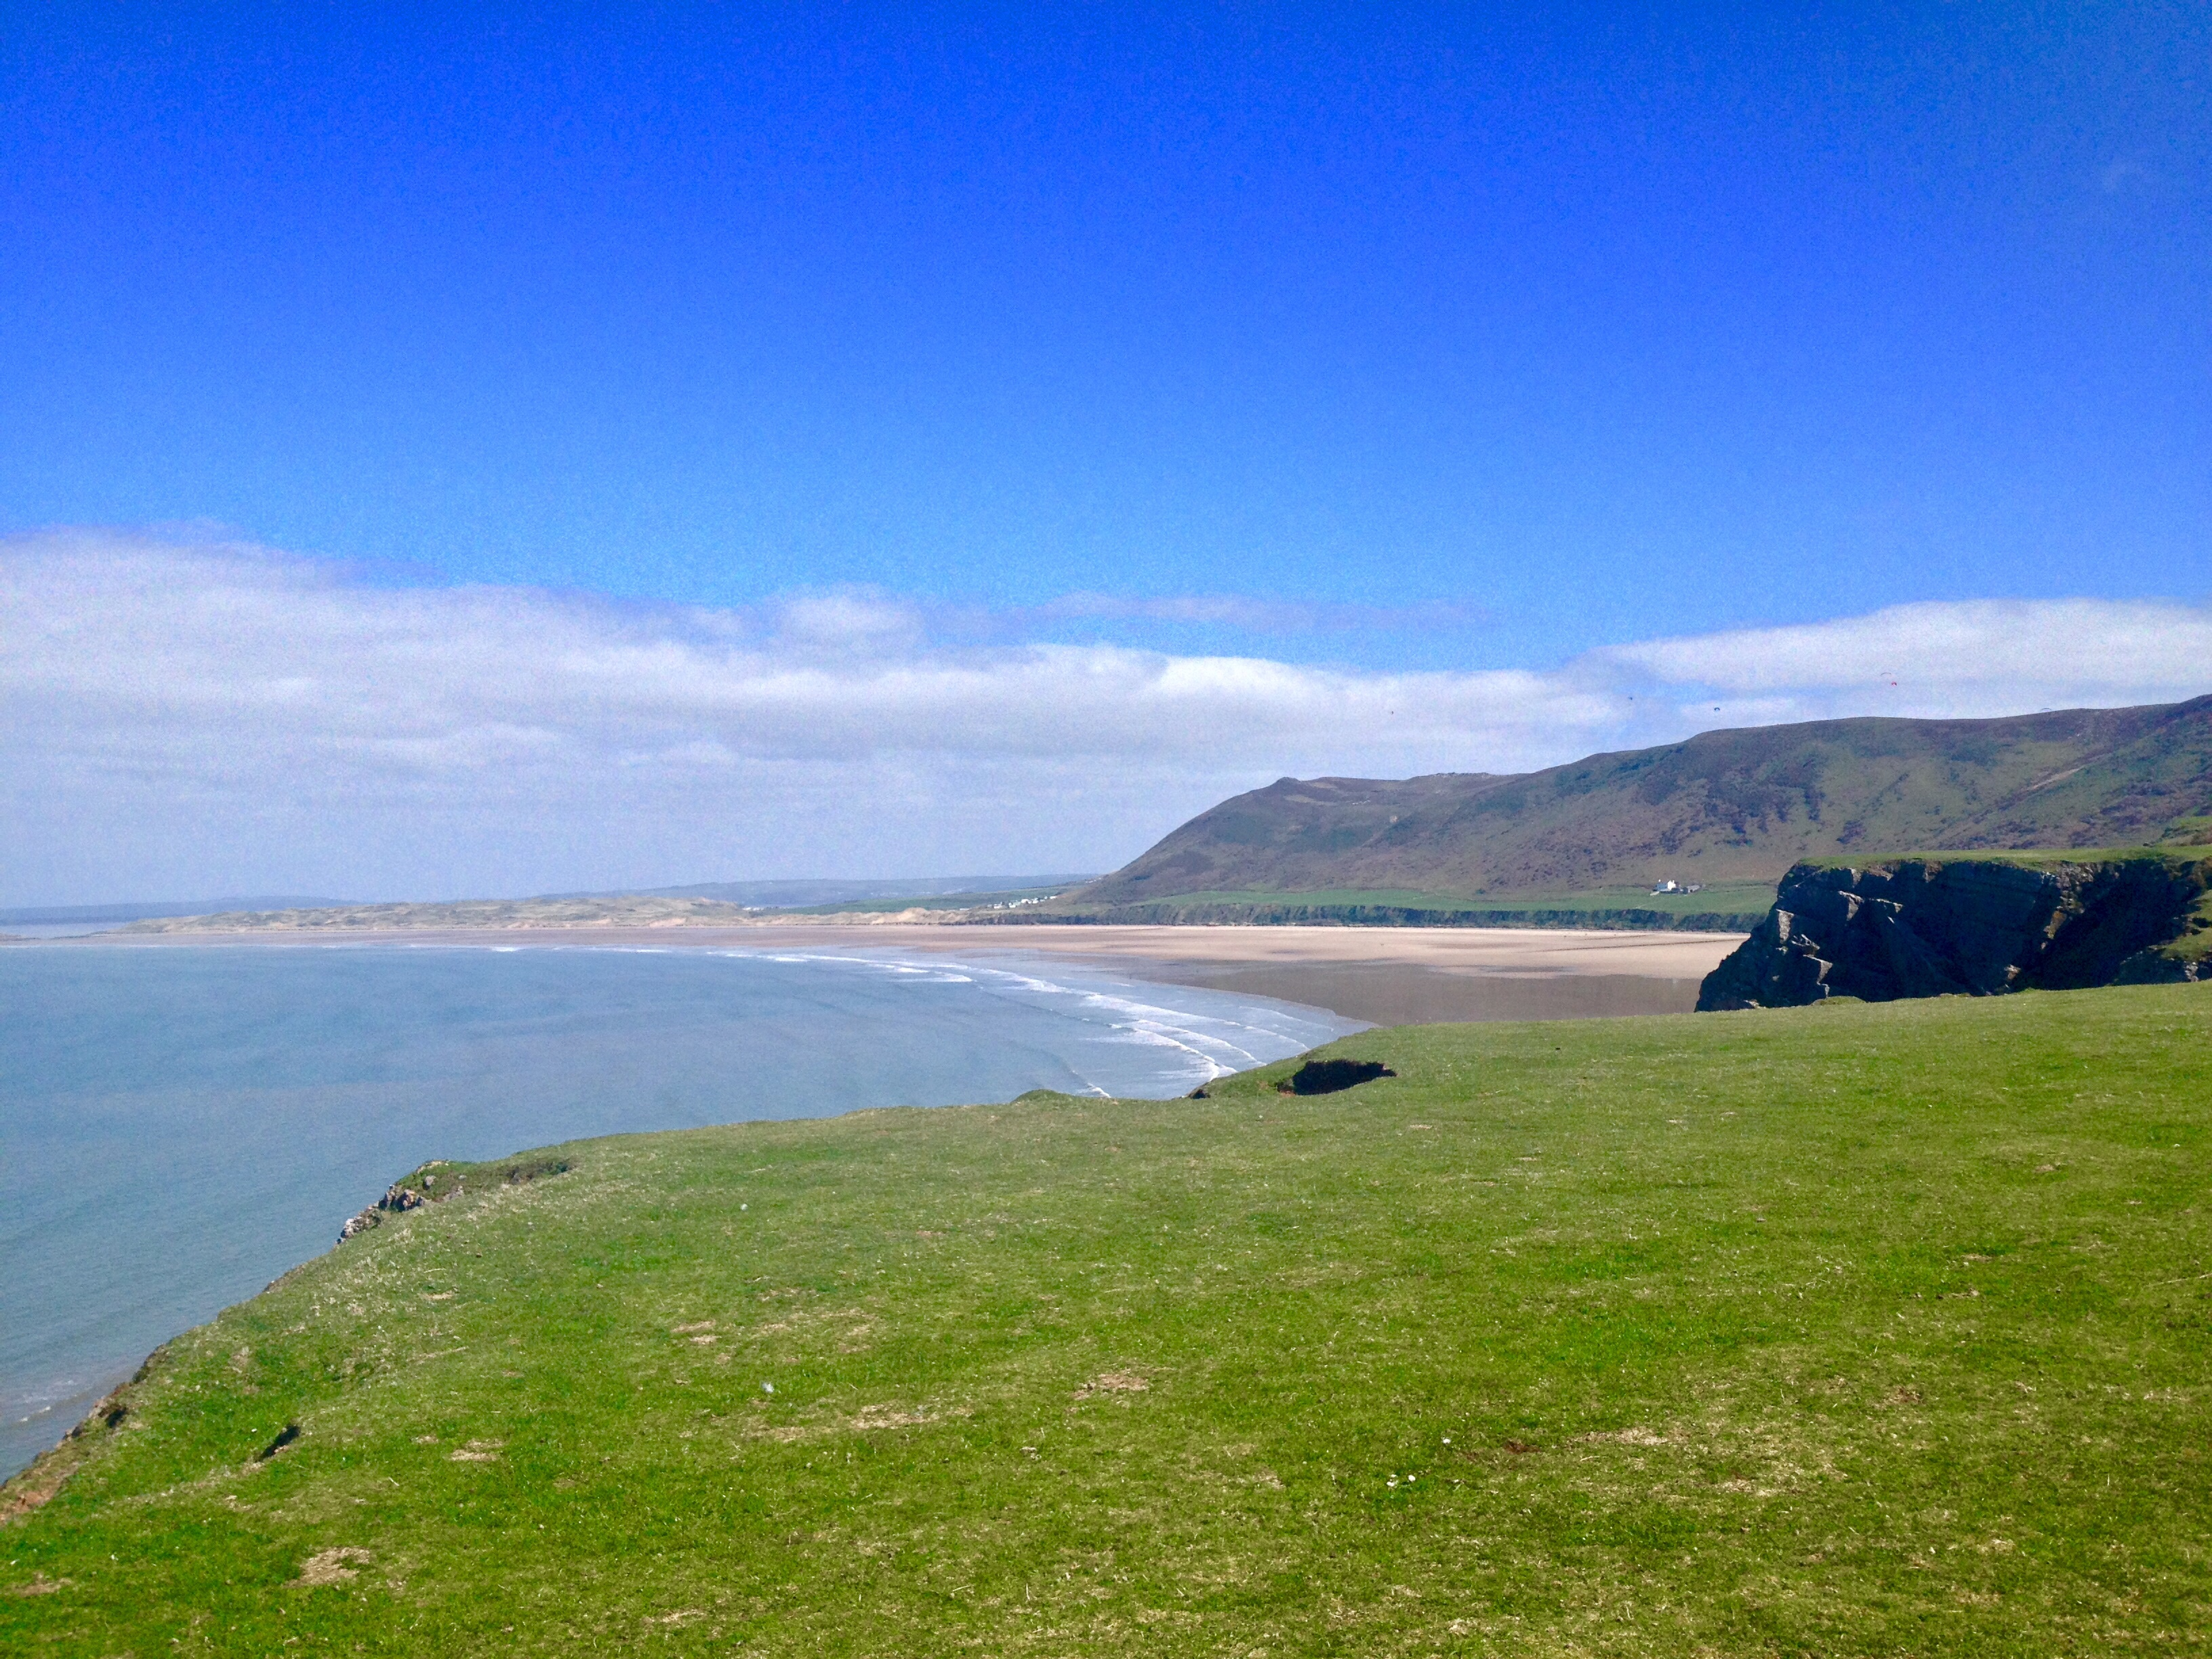 Rhossili Bay Gower Peninsula